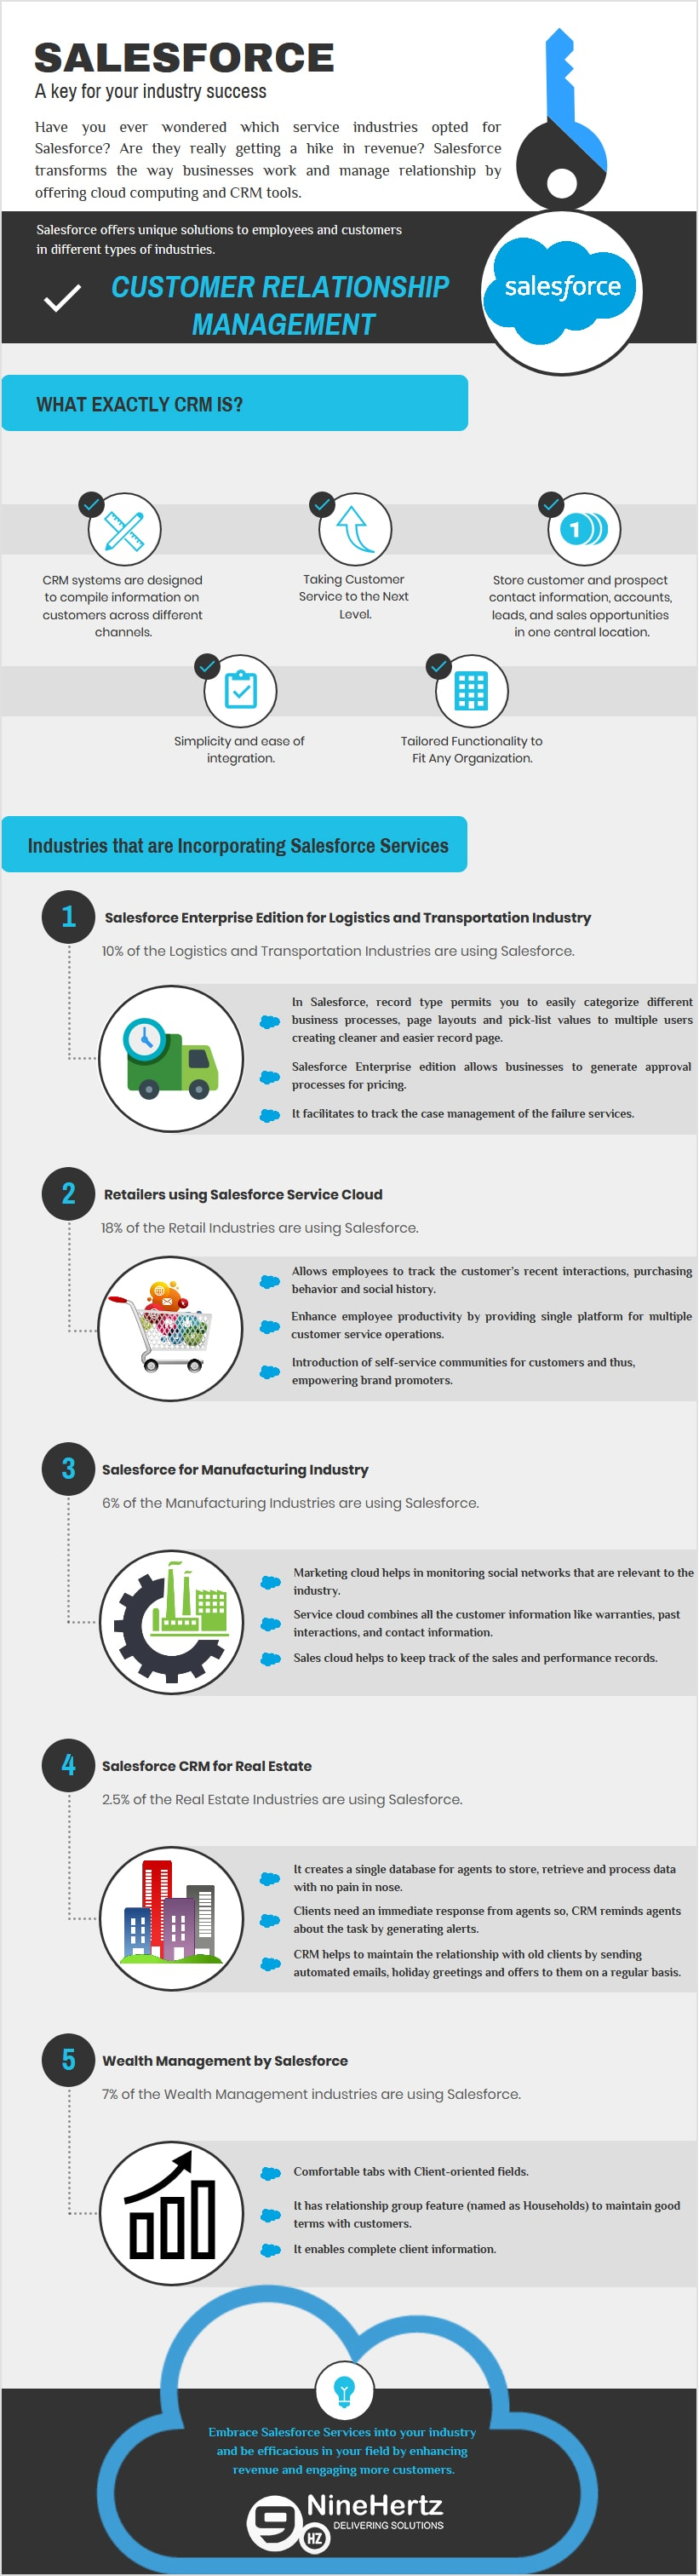 Salesforce - Key For Your Industry Solutions